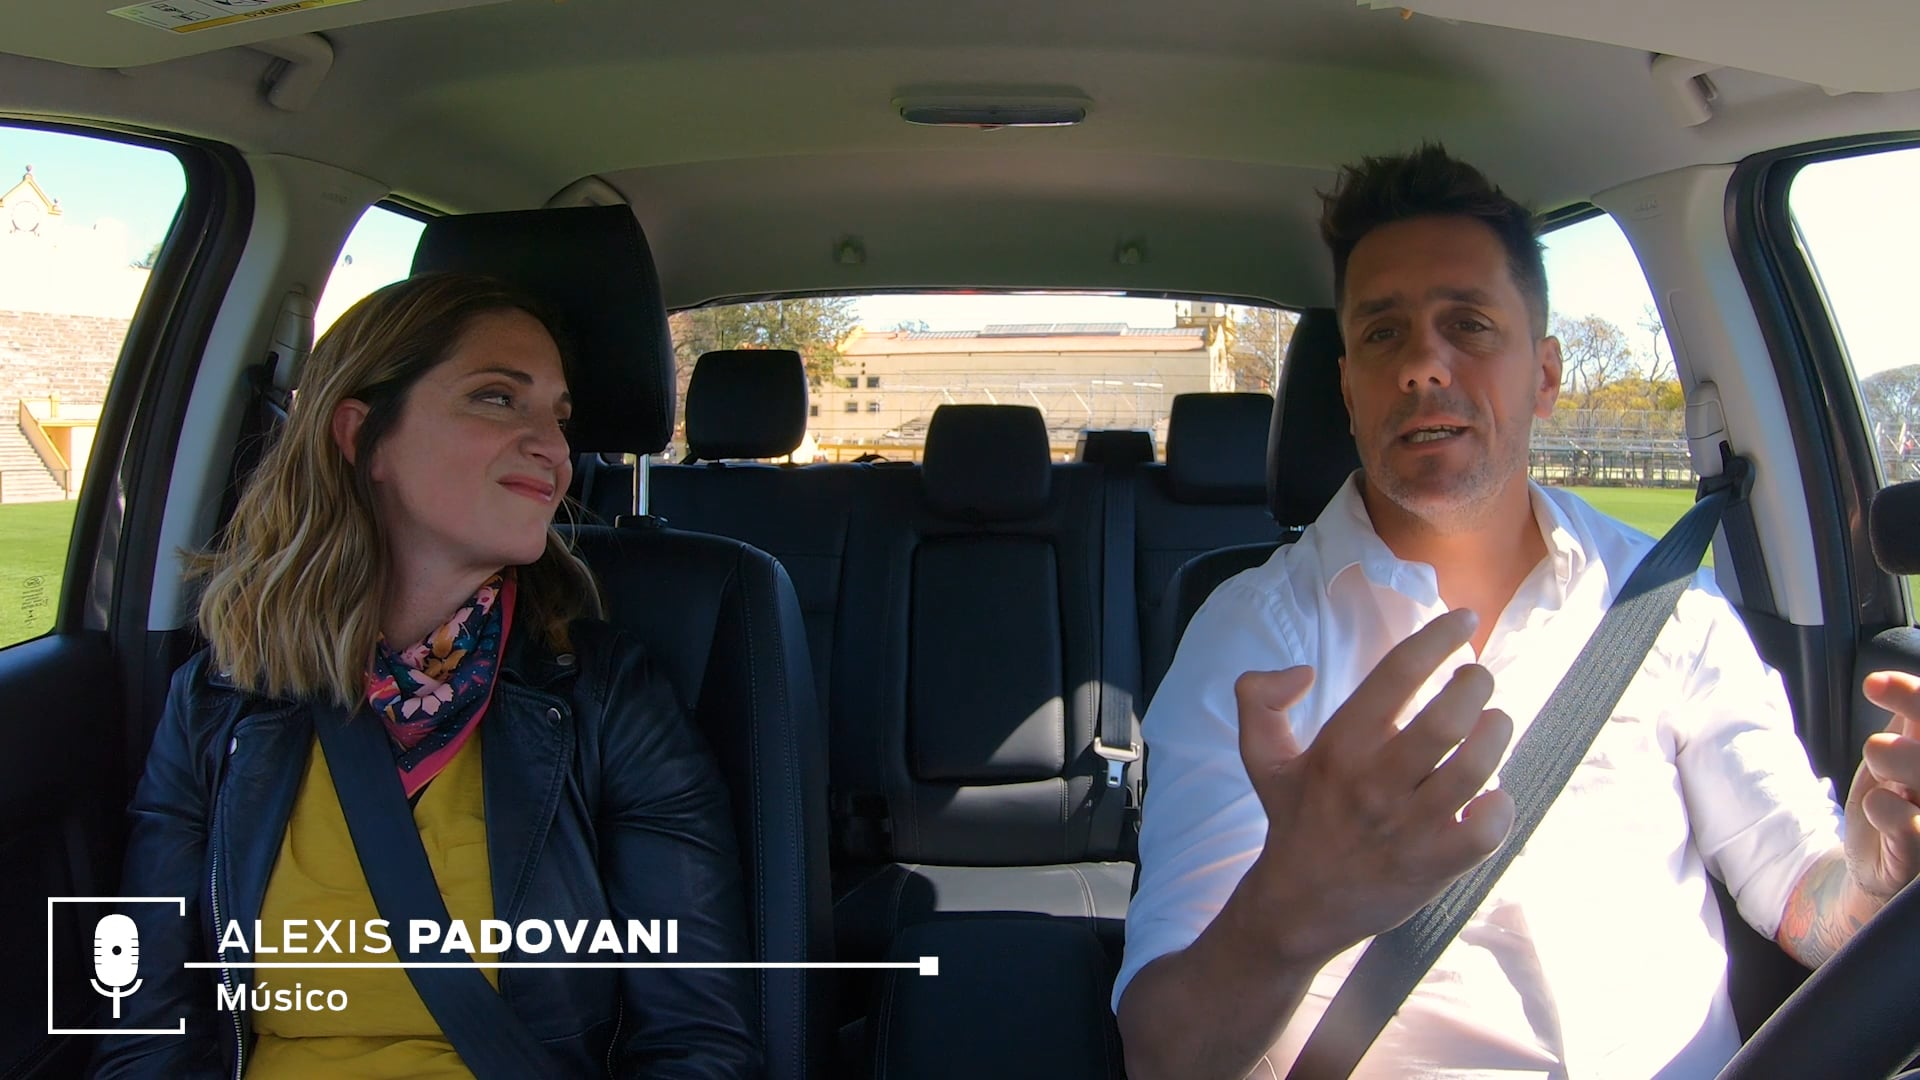 FORD - FordCast Alexis Padovani Trailer